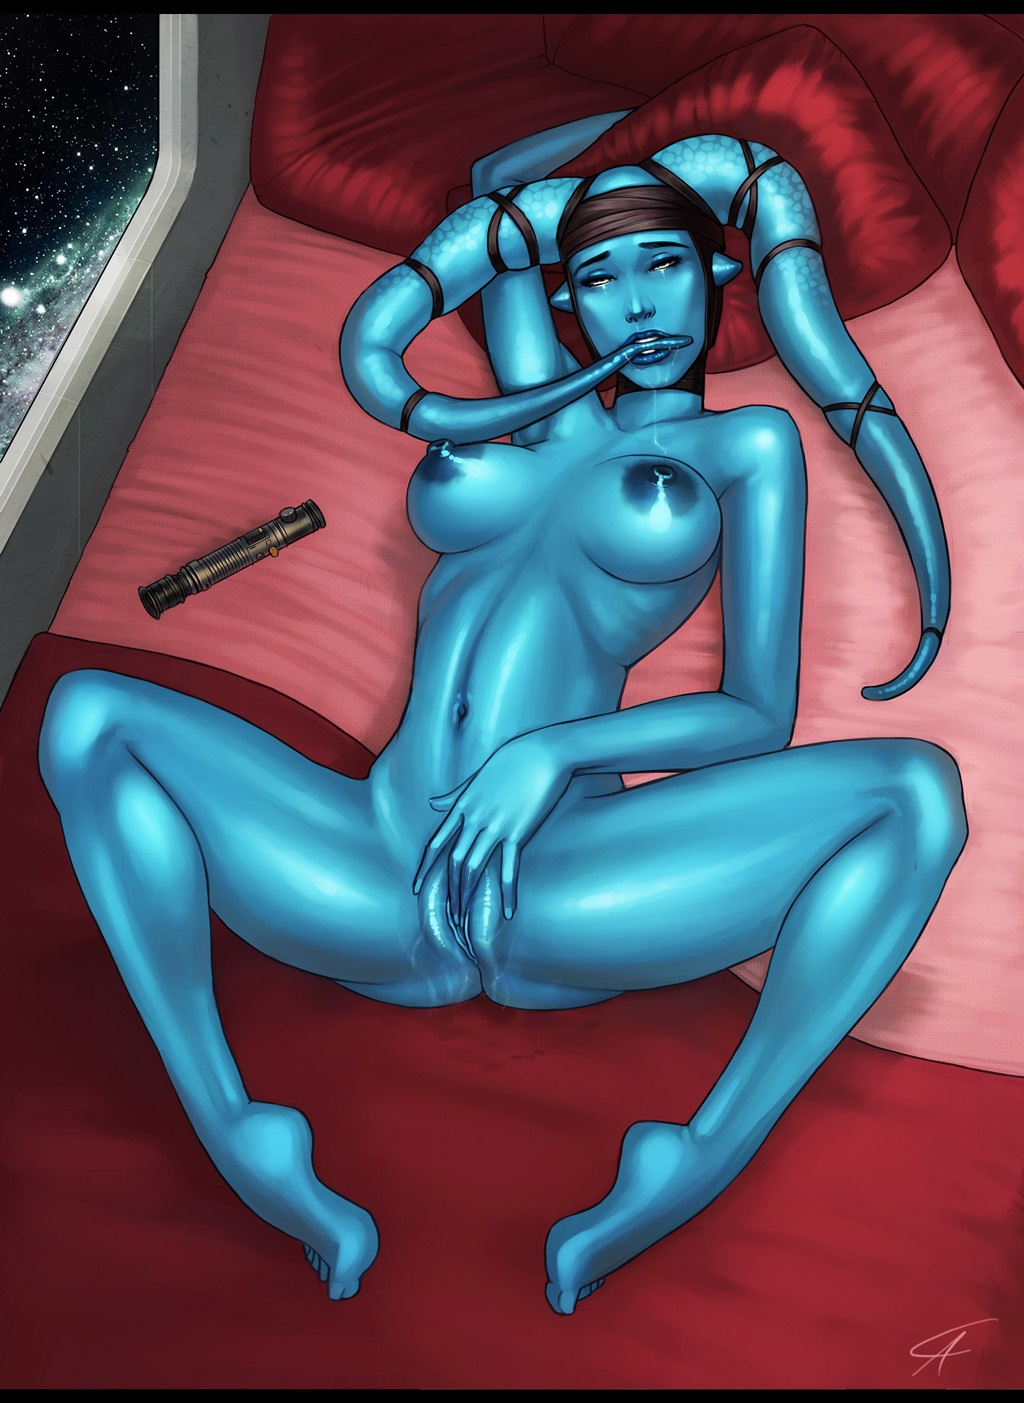 Naked twi'lek dancers sexy videos